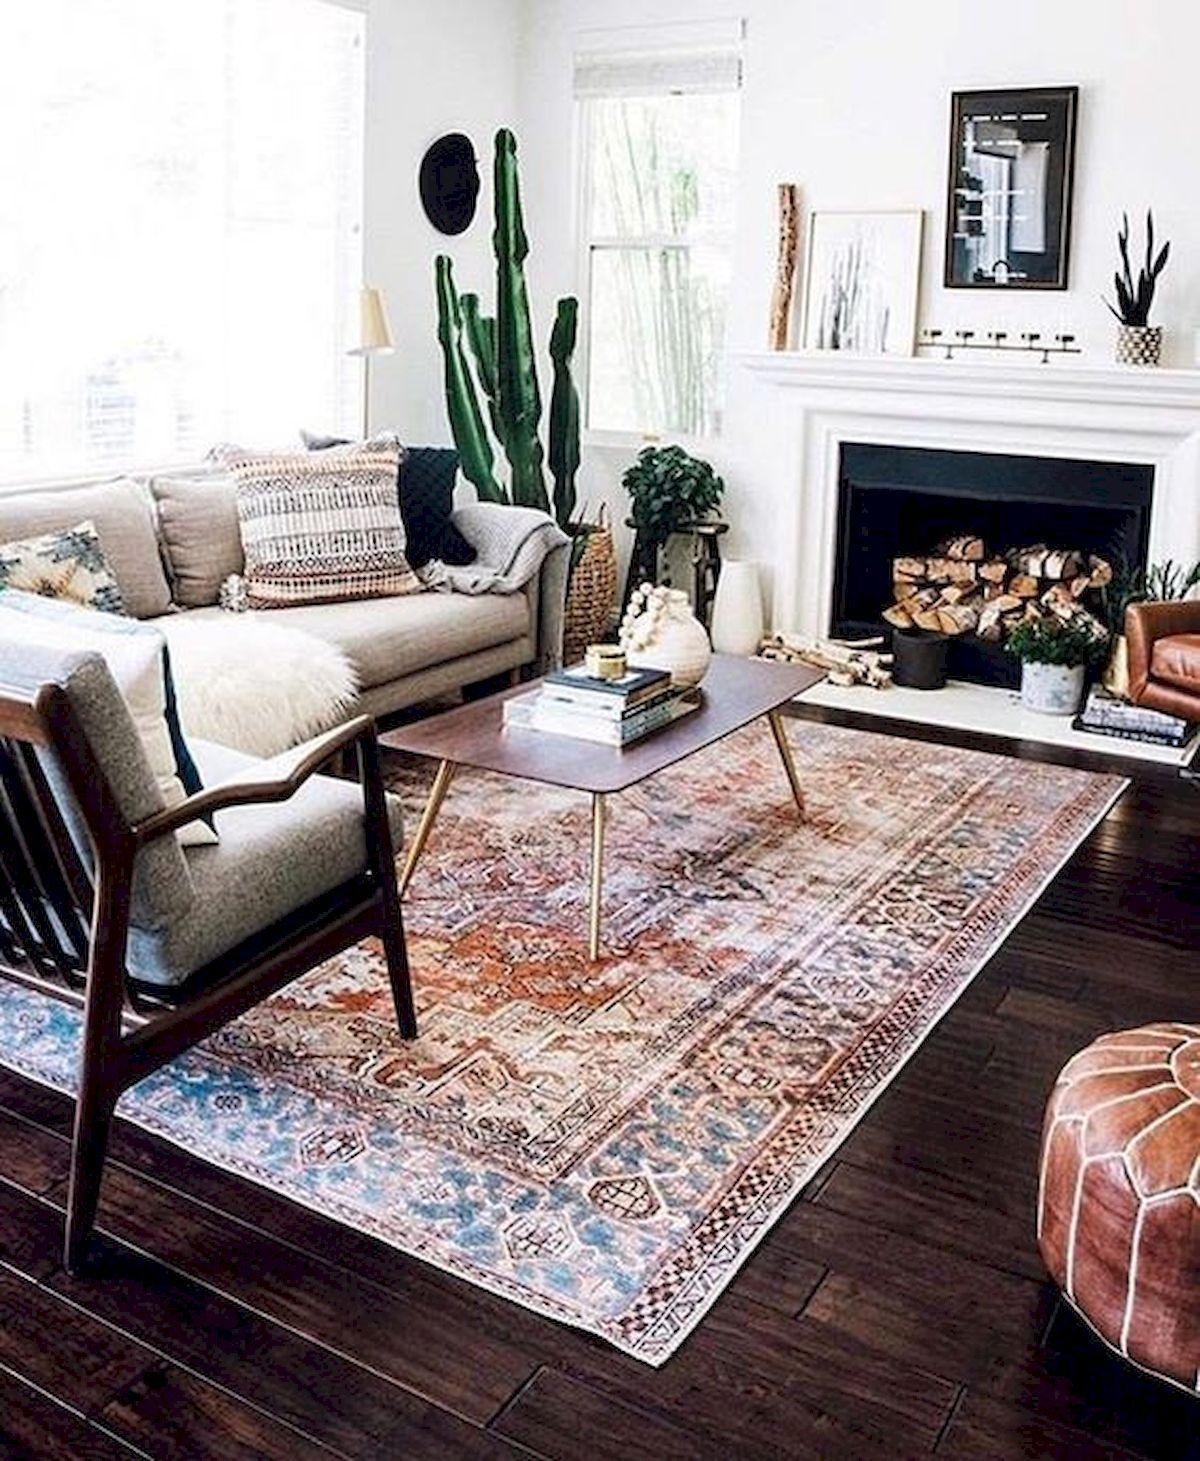 33 Inspiring Modern Farmhouse Rugs Decor Ideas And Design